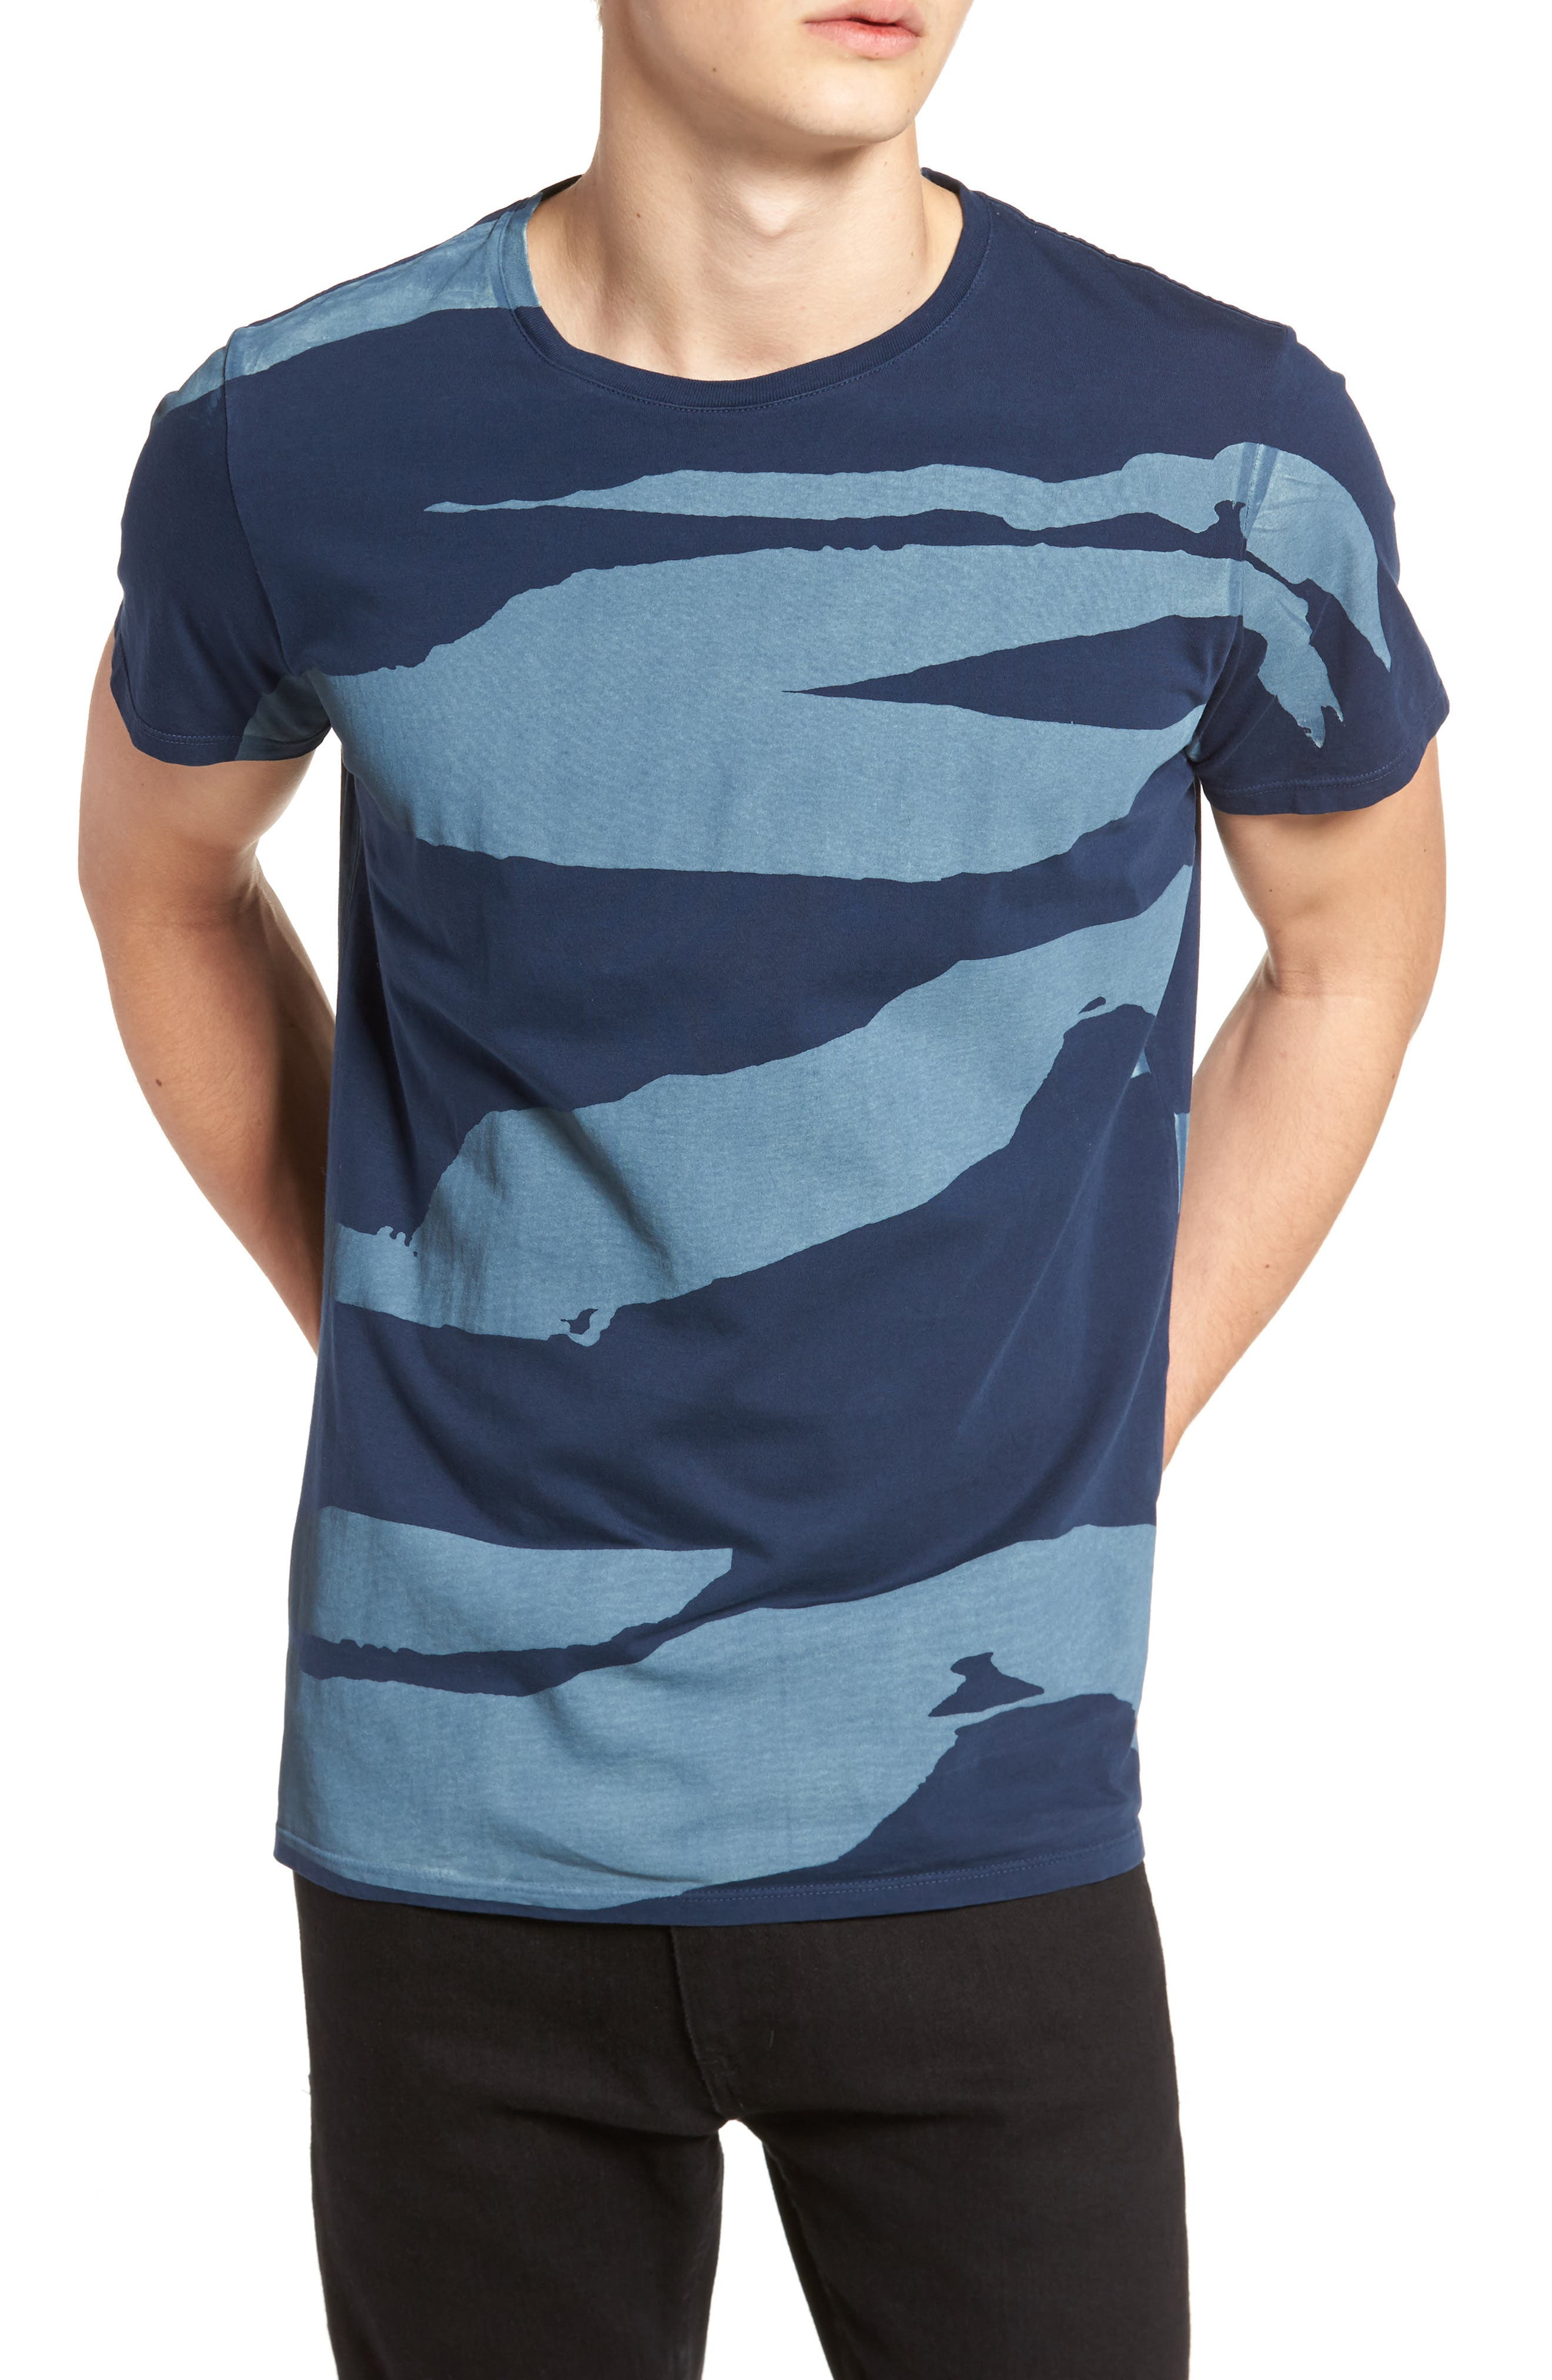 Torn Stripes T-Shirt,                         Main,                         color, Navy